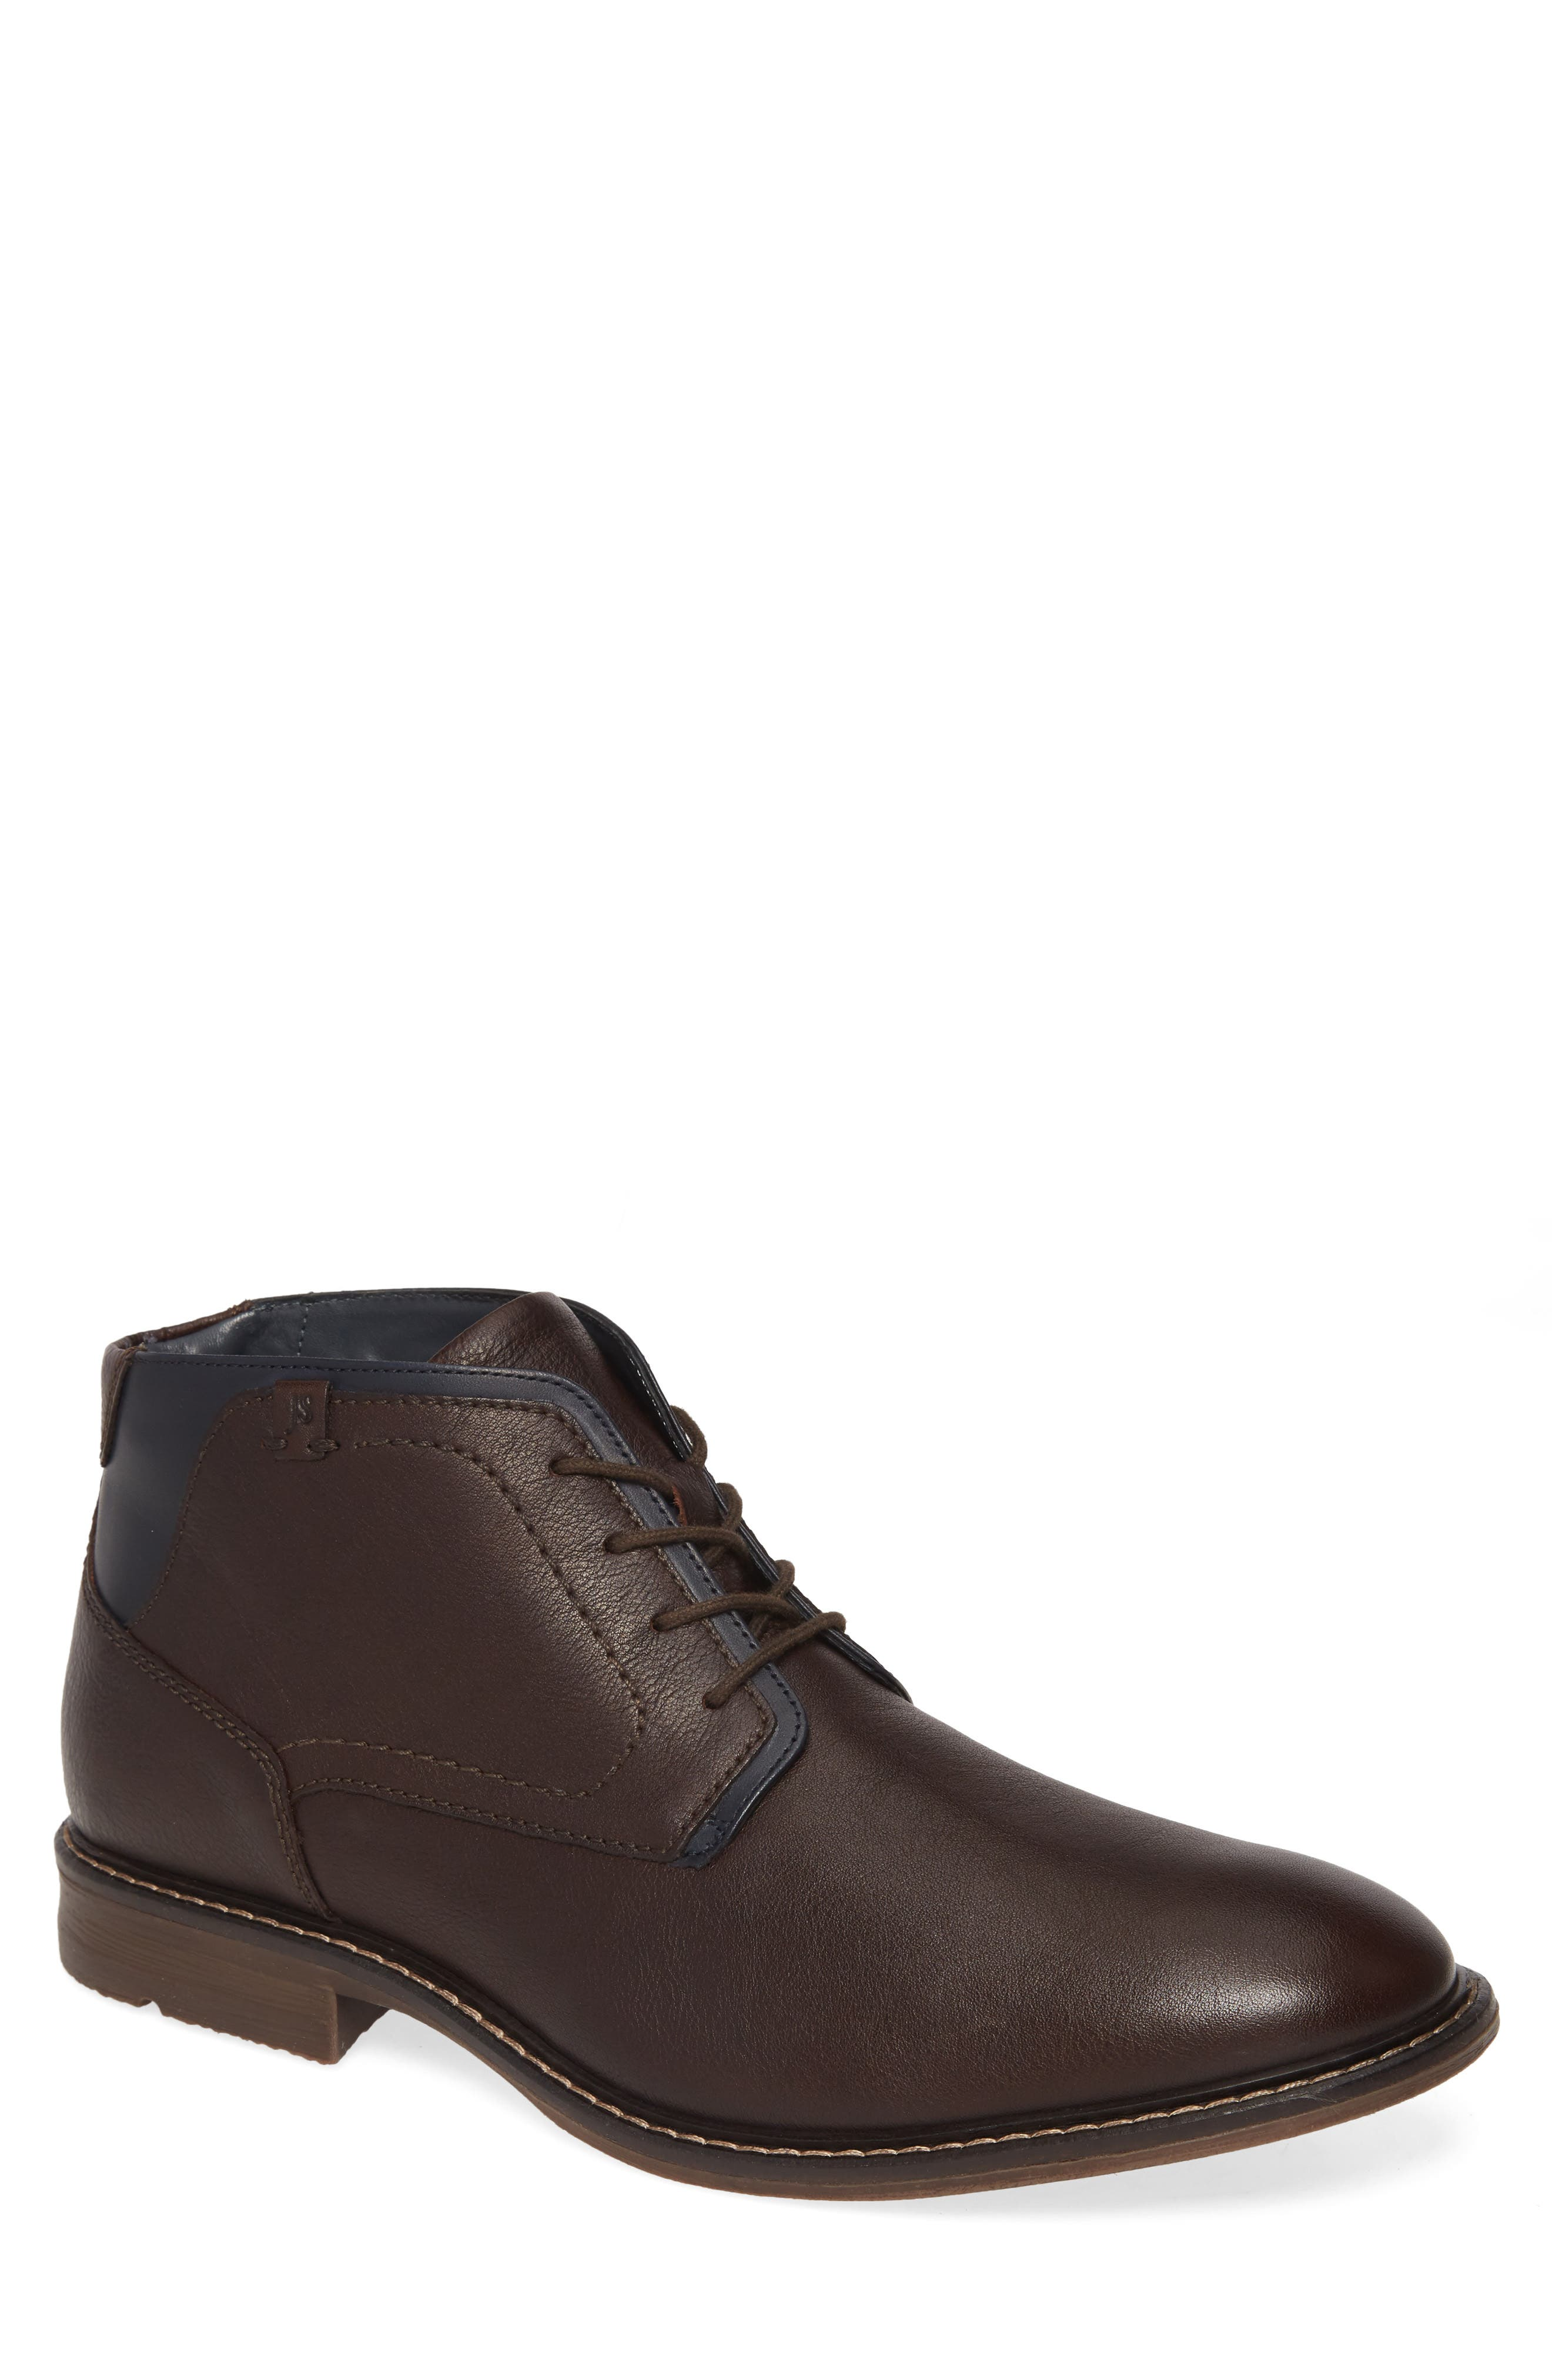 High-quality full-grain leather defines a stylish chukka boot built with a flexible, durable sole and cushioned arch support. Style Name: Josef Seibel Earl 04 Chukka Boot (Men). Style Number: 5837310. Available in stores.